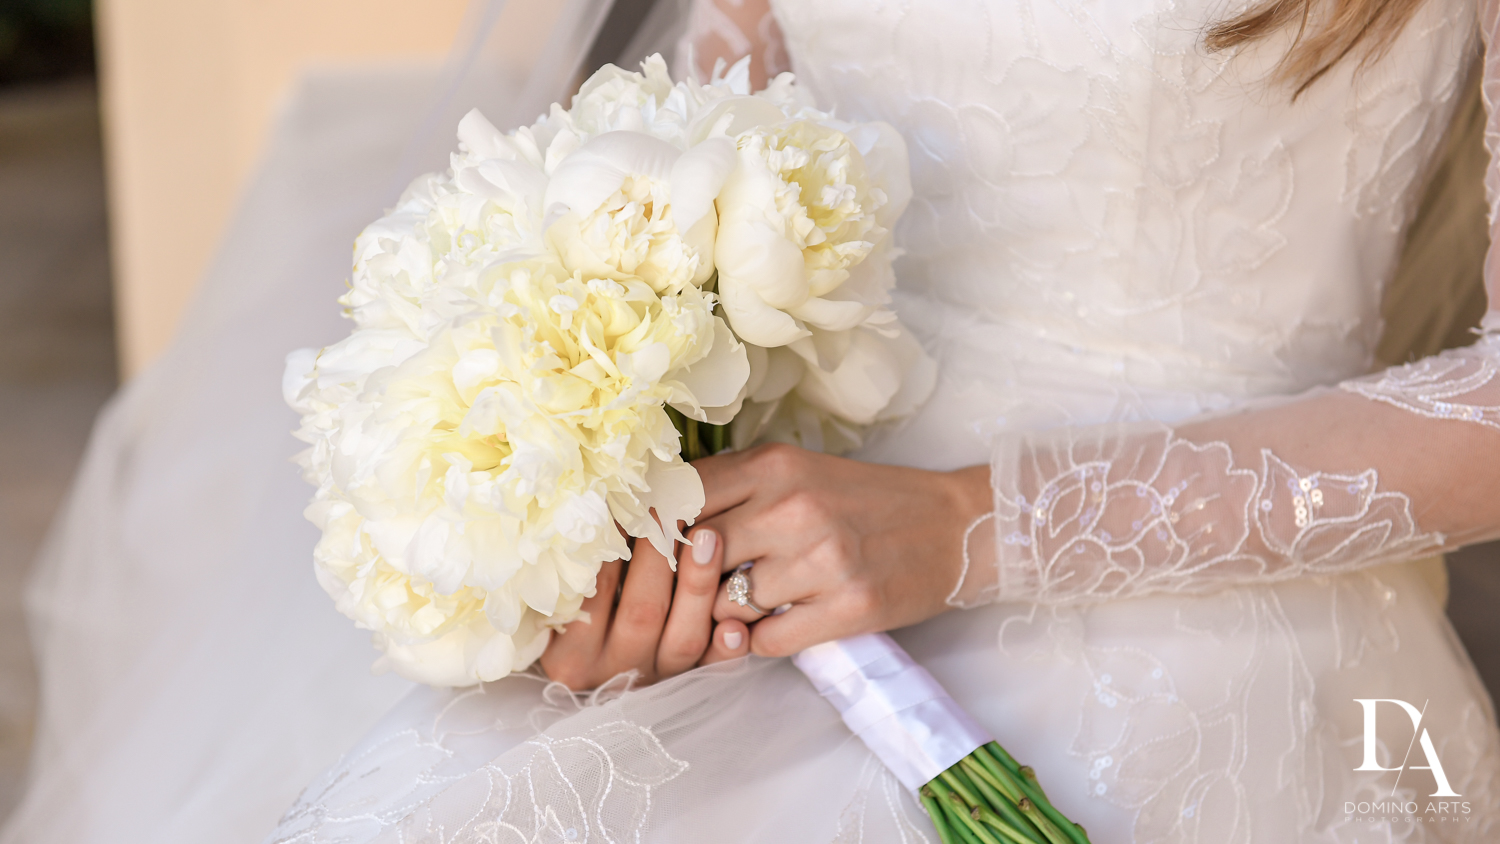 white wedding flowers bouquet by domino arts photography